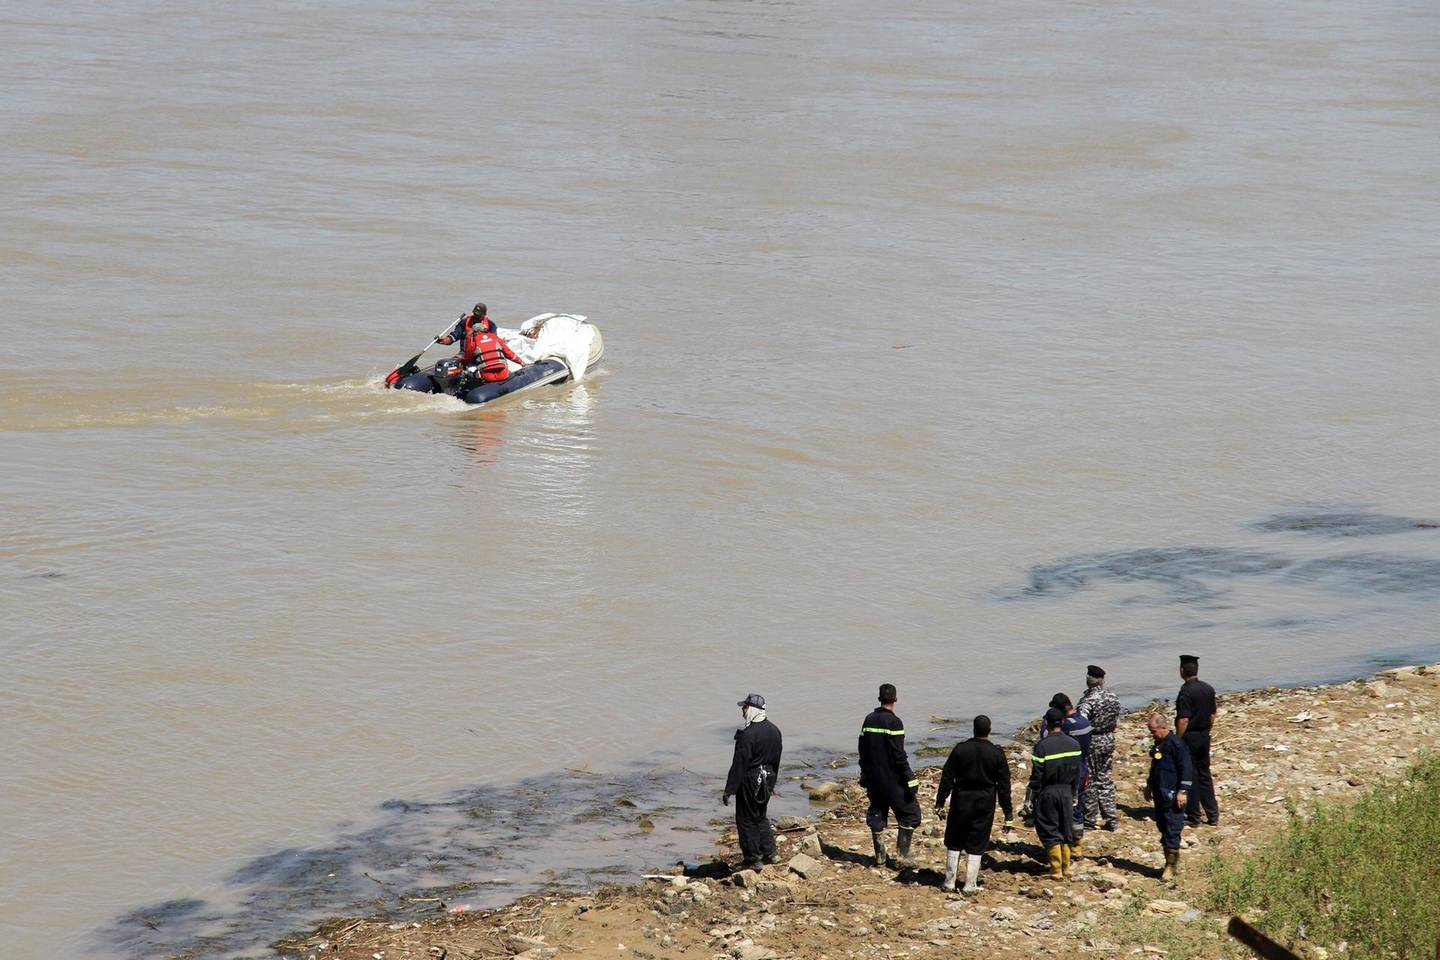 Iraqi civil defence recover a body from the Tigris river in the northern Iraqi city of Mosul on May 16, 2018.  Some 10 months after dislodging the Islamic State group, fire crews and police are still extracting bodies from the ruins of the shattered Old City. / AFP / Waleed AL-KHALID